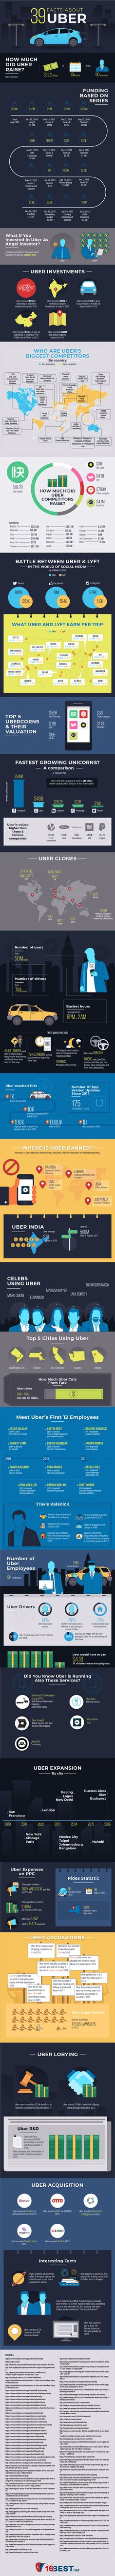 39 Facts About Uber (Infographic) 2018 - 16best.net